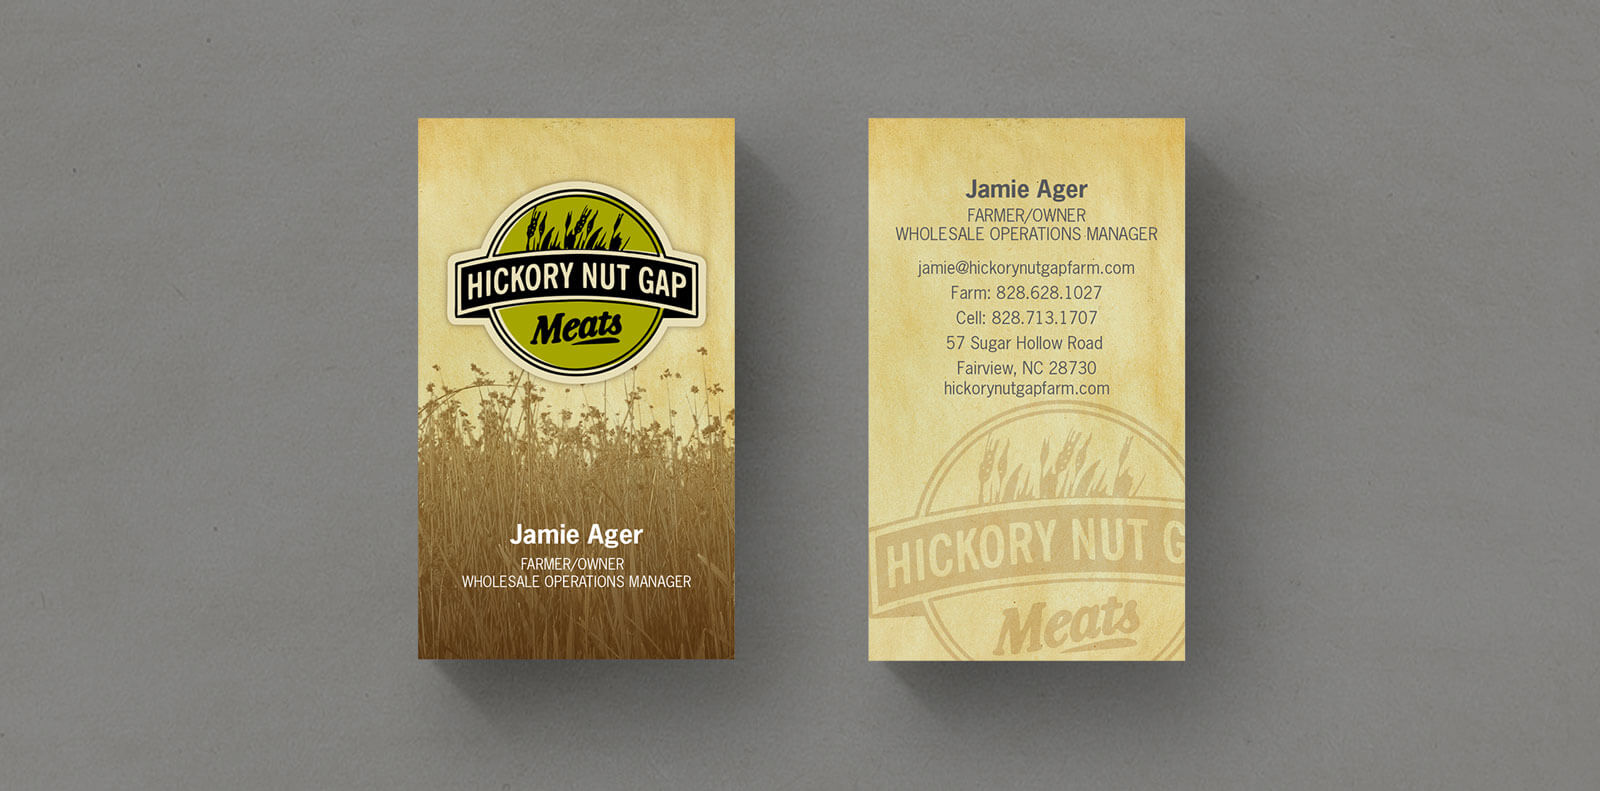 Hickory Nut Gap Meats business card with logo and grass centered